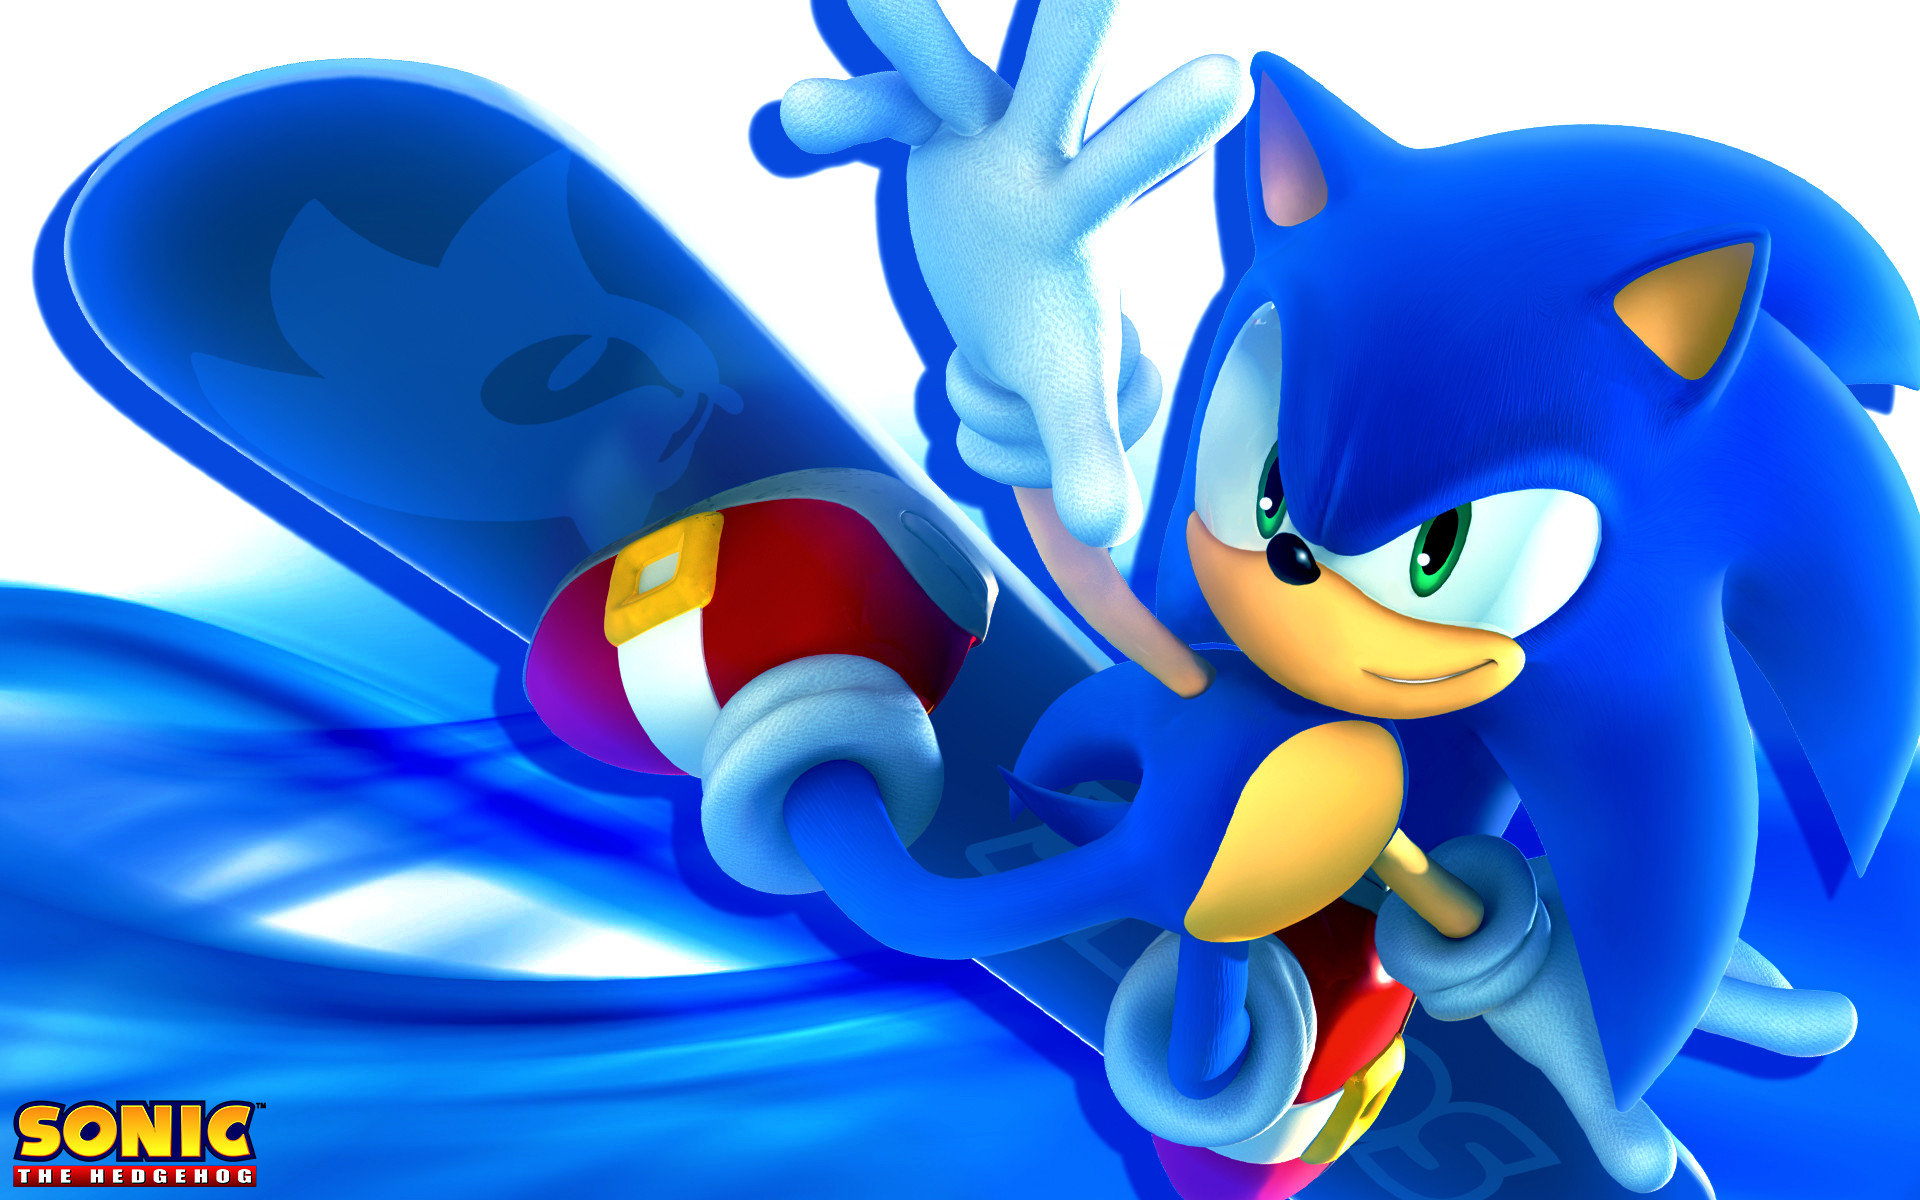 Sonic The Hedgehog Snowboarding Wallpaper by SonicTheHedgehogBG Sonic The  Hedgehog Snowboarding Wallpaper by SonicTheHedgehogBG